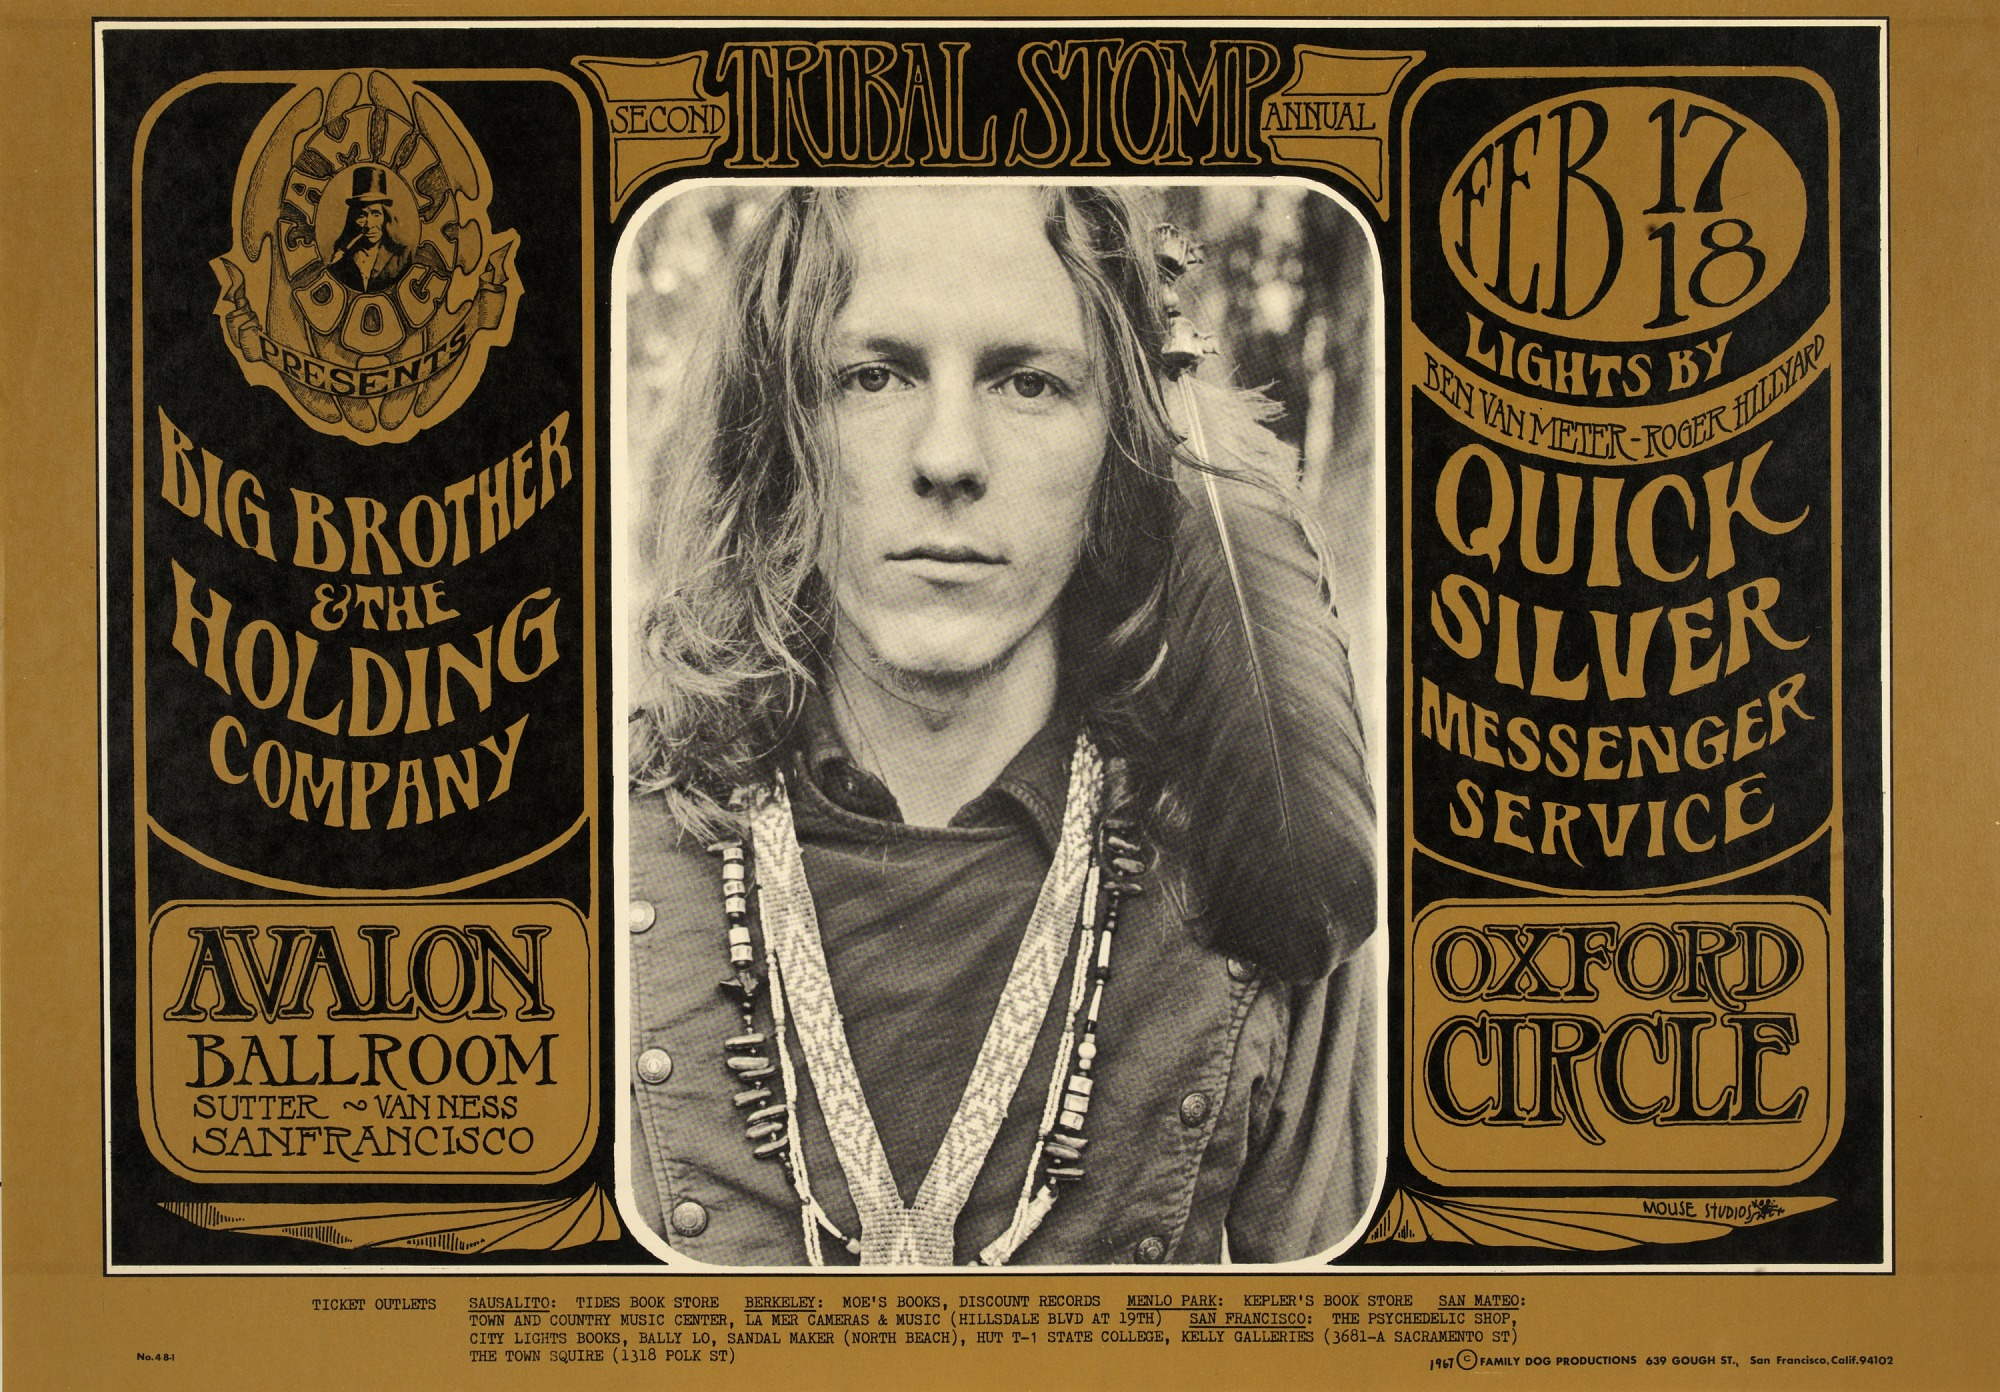 Image for Tribal Stomp #2 (Big Brother and the Holding Company, Quicksilver Messenger Service...Avalon Ballroom, San Francisco, California 2/17/67 - 2/18/67)